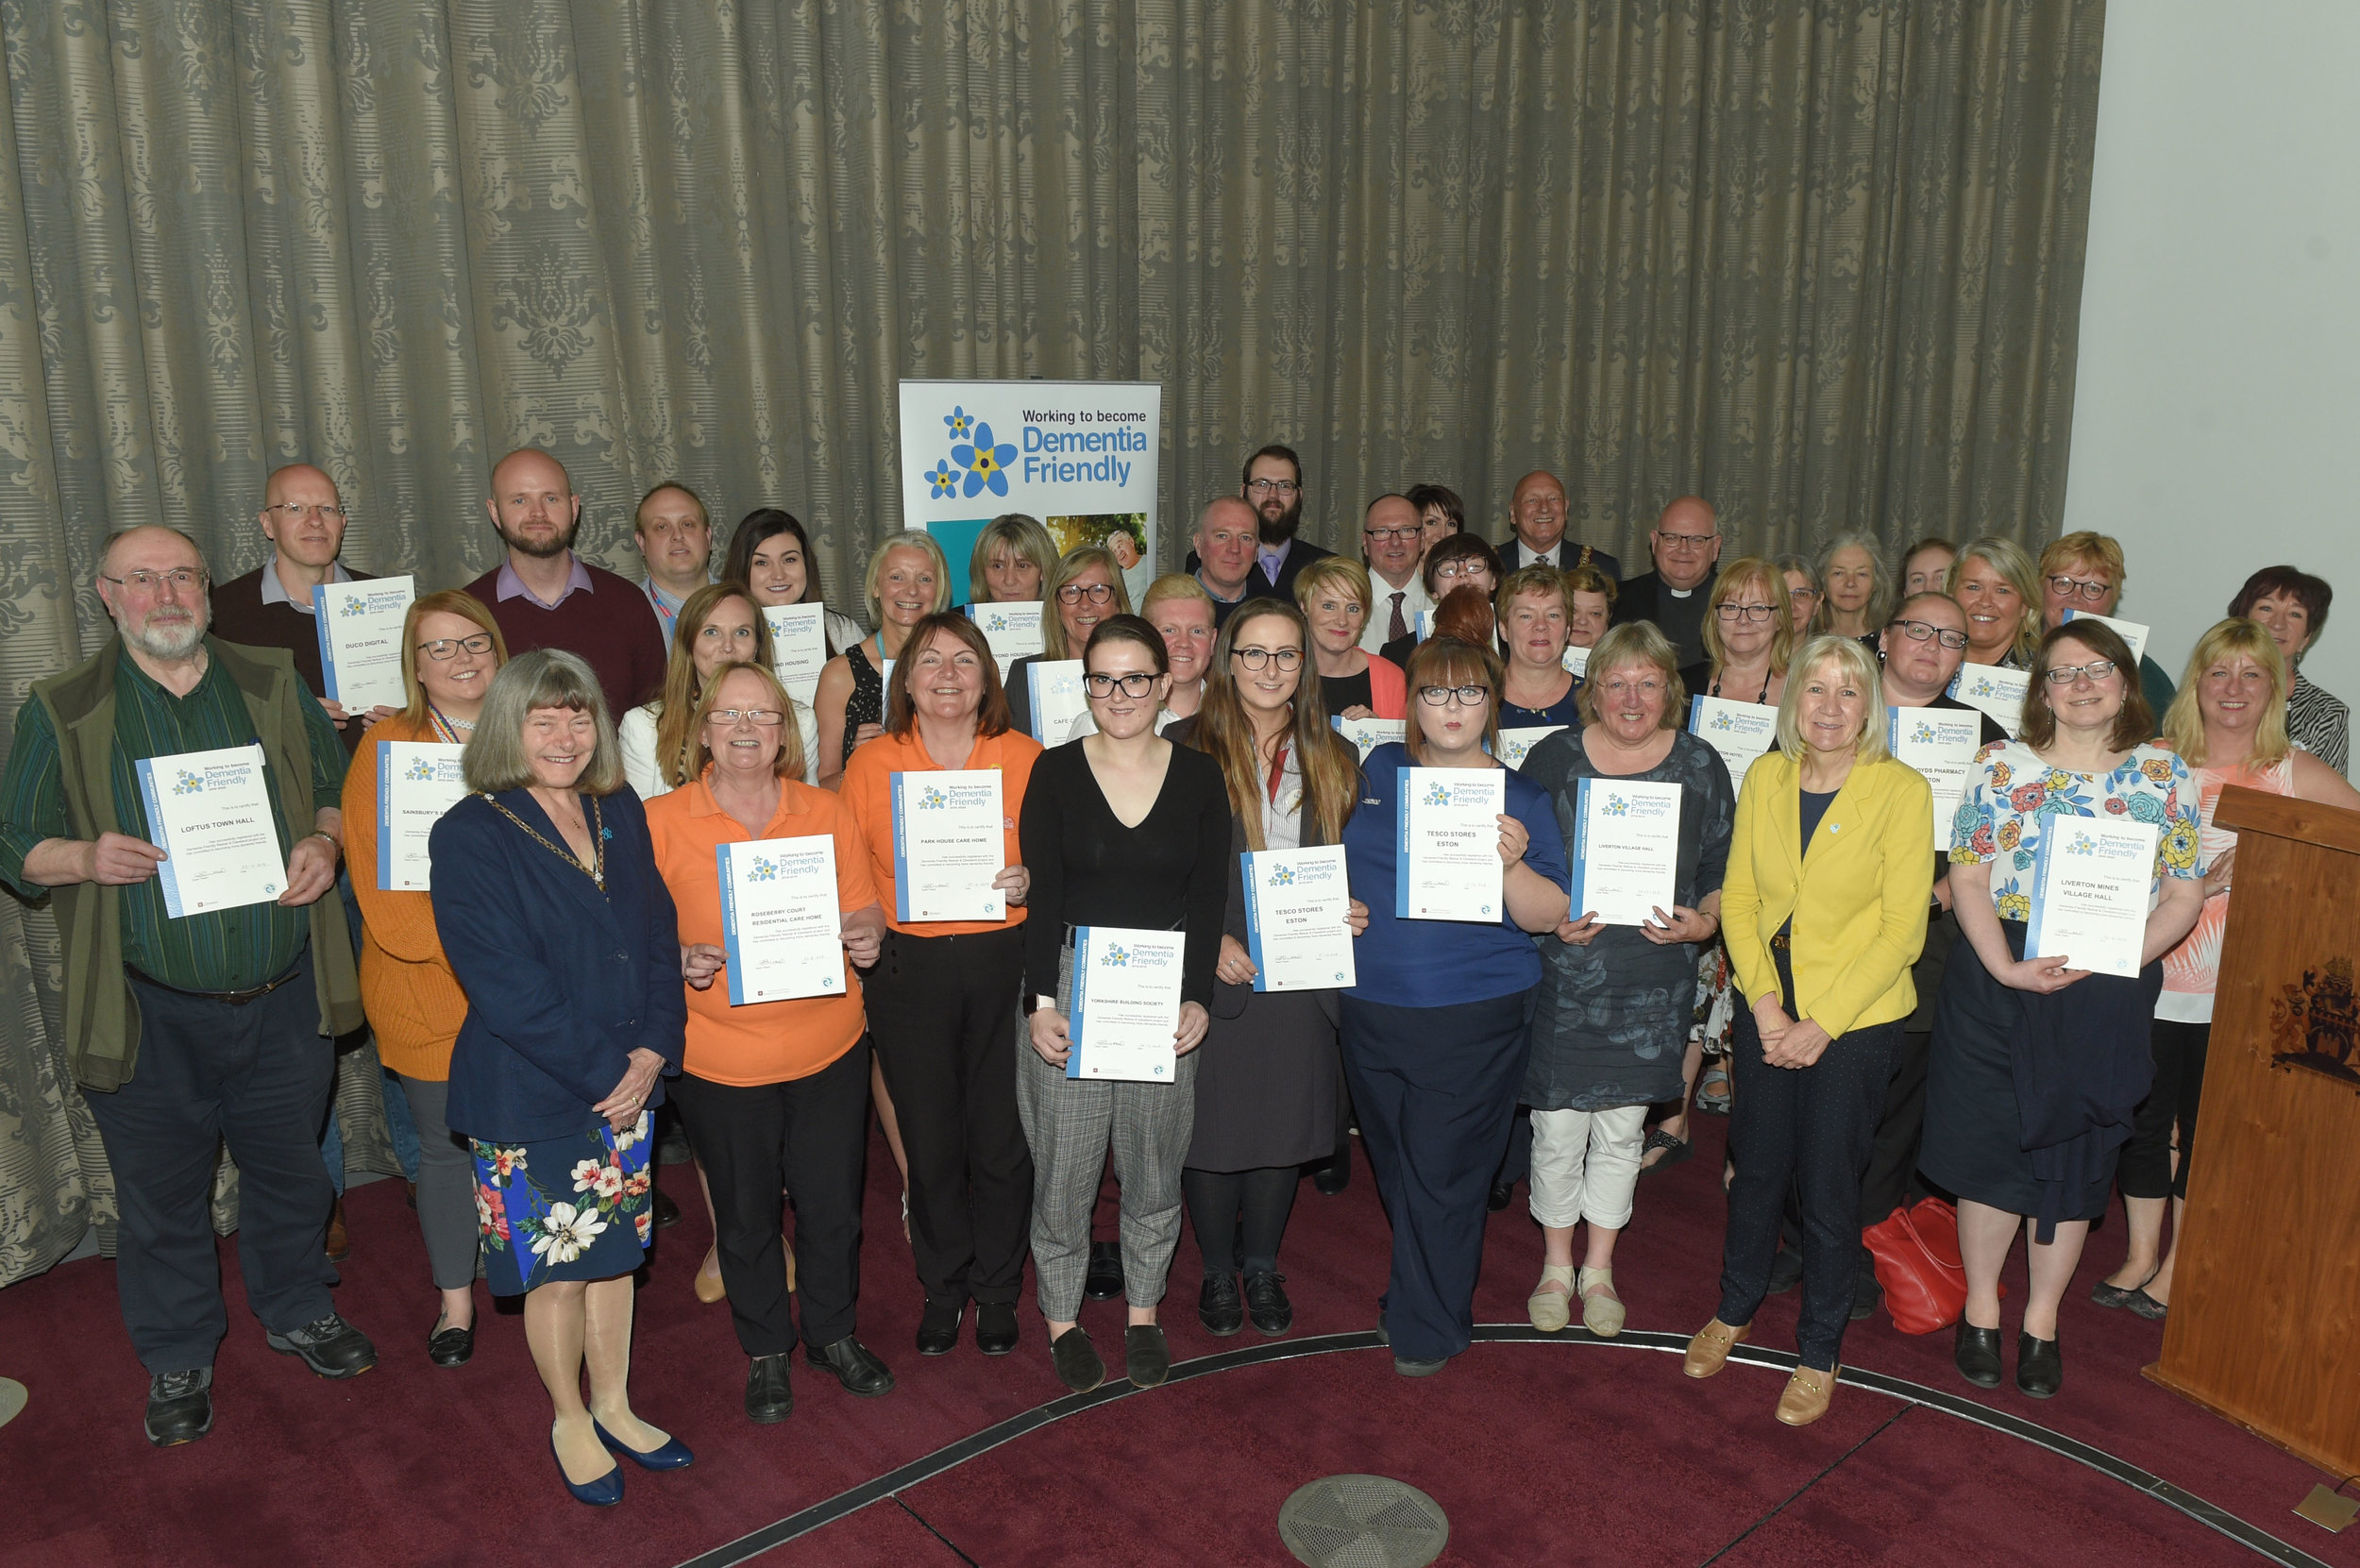 Redcar and Cleveland businesses receiving their Dementia Friendly accreditation at the awards ceremony in April at Redcar Cleveland Community Heart.